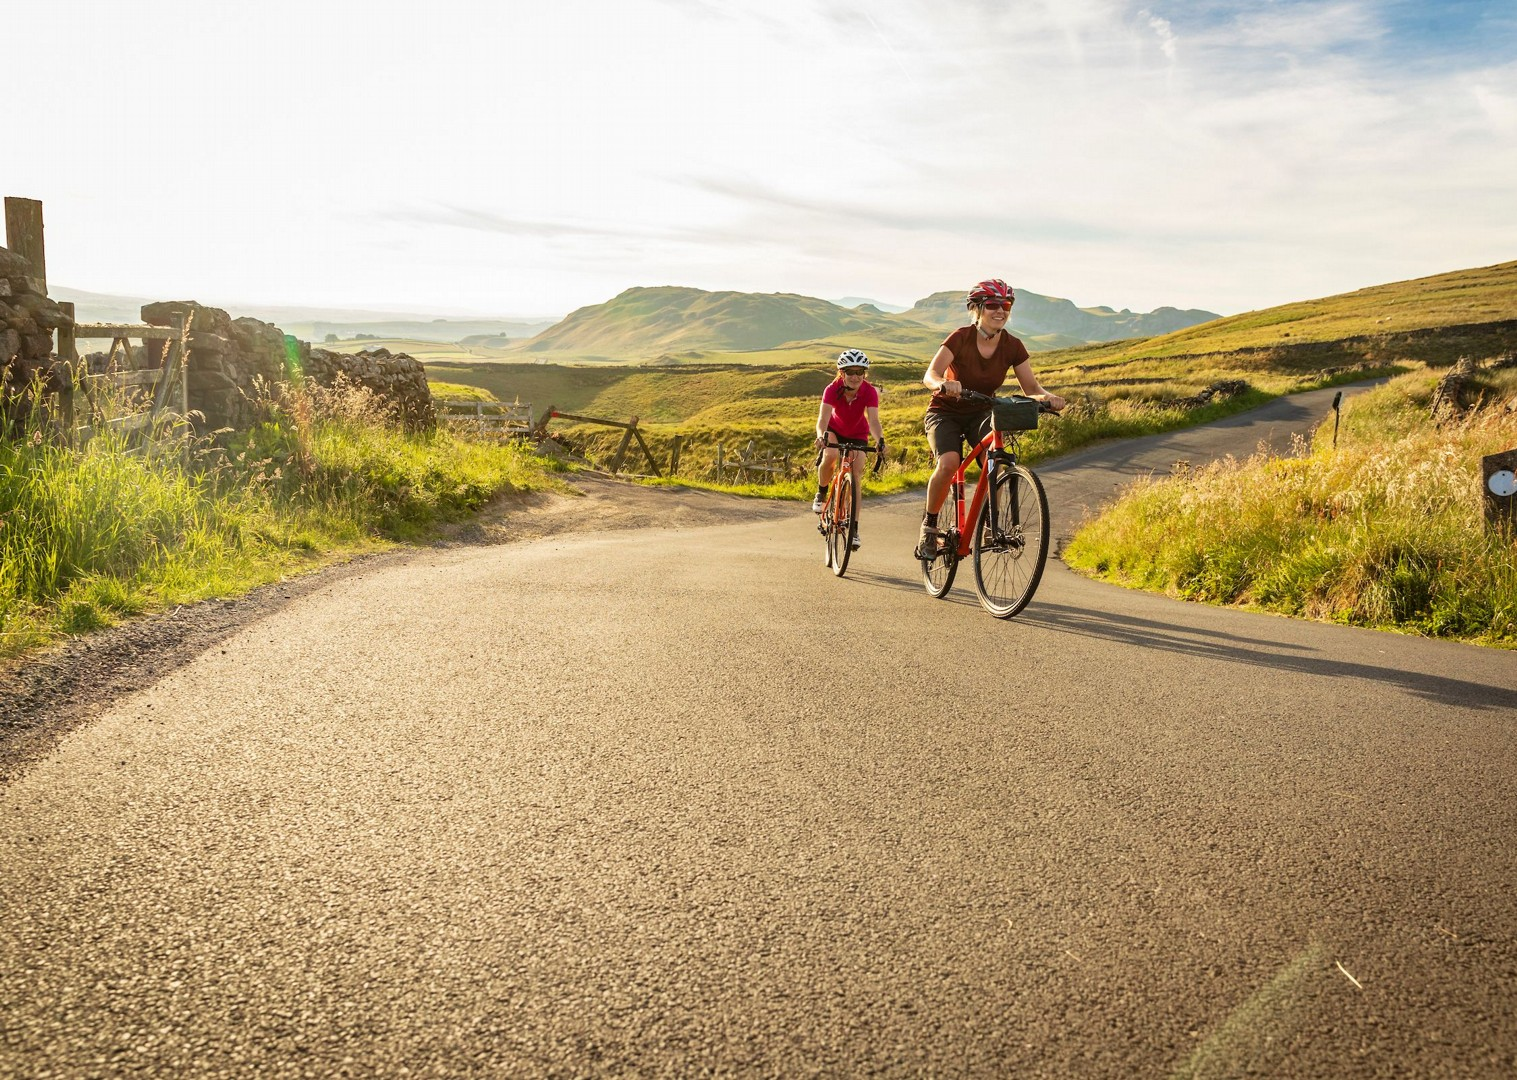 uk-yorkshire-leisure-self-guided-moors-cycling.jpg - UK - Way of the Roses 5 Days Cycling - Self-Guided Leisure Cycling Holiday - Leisure Cycling